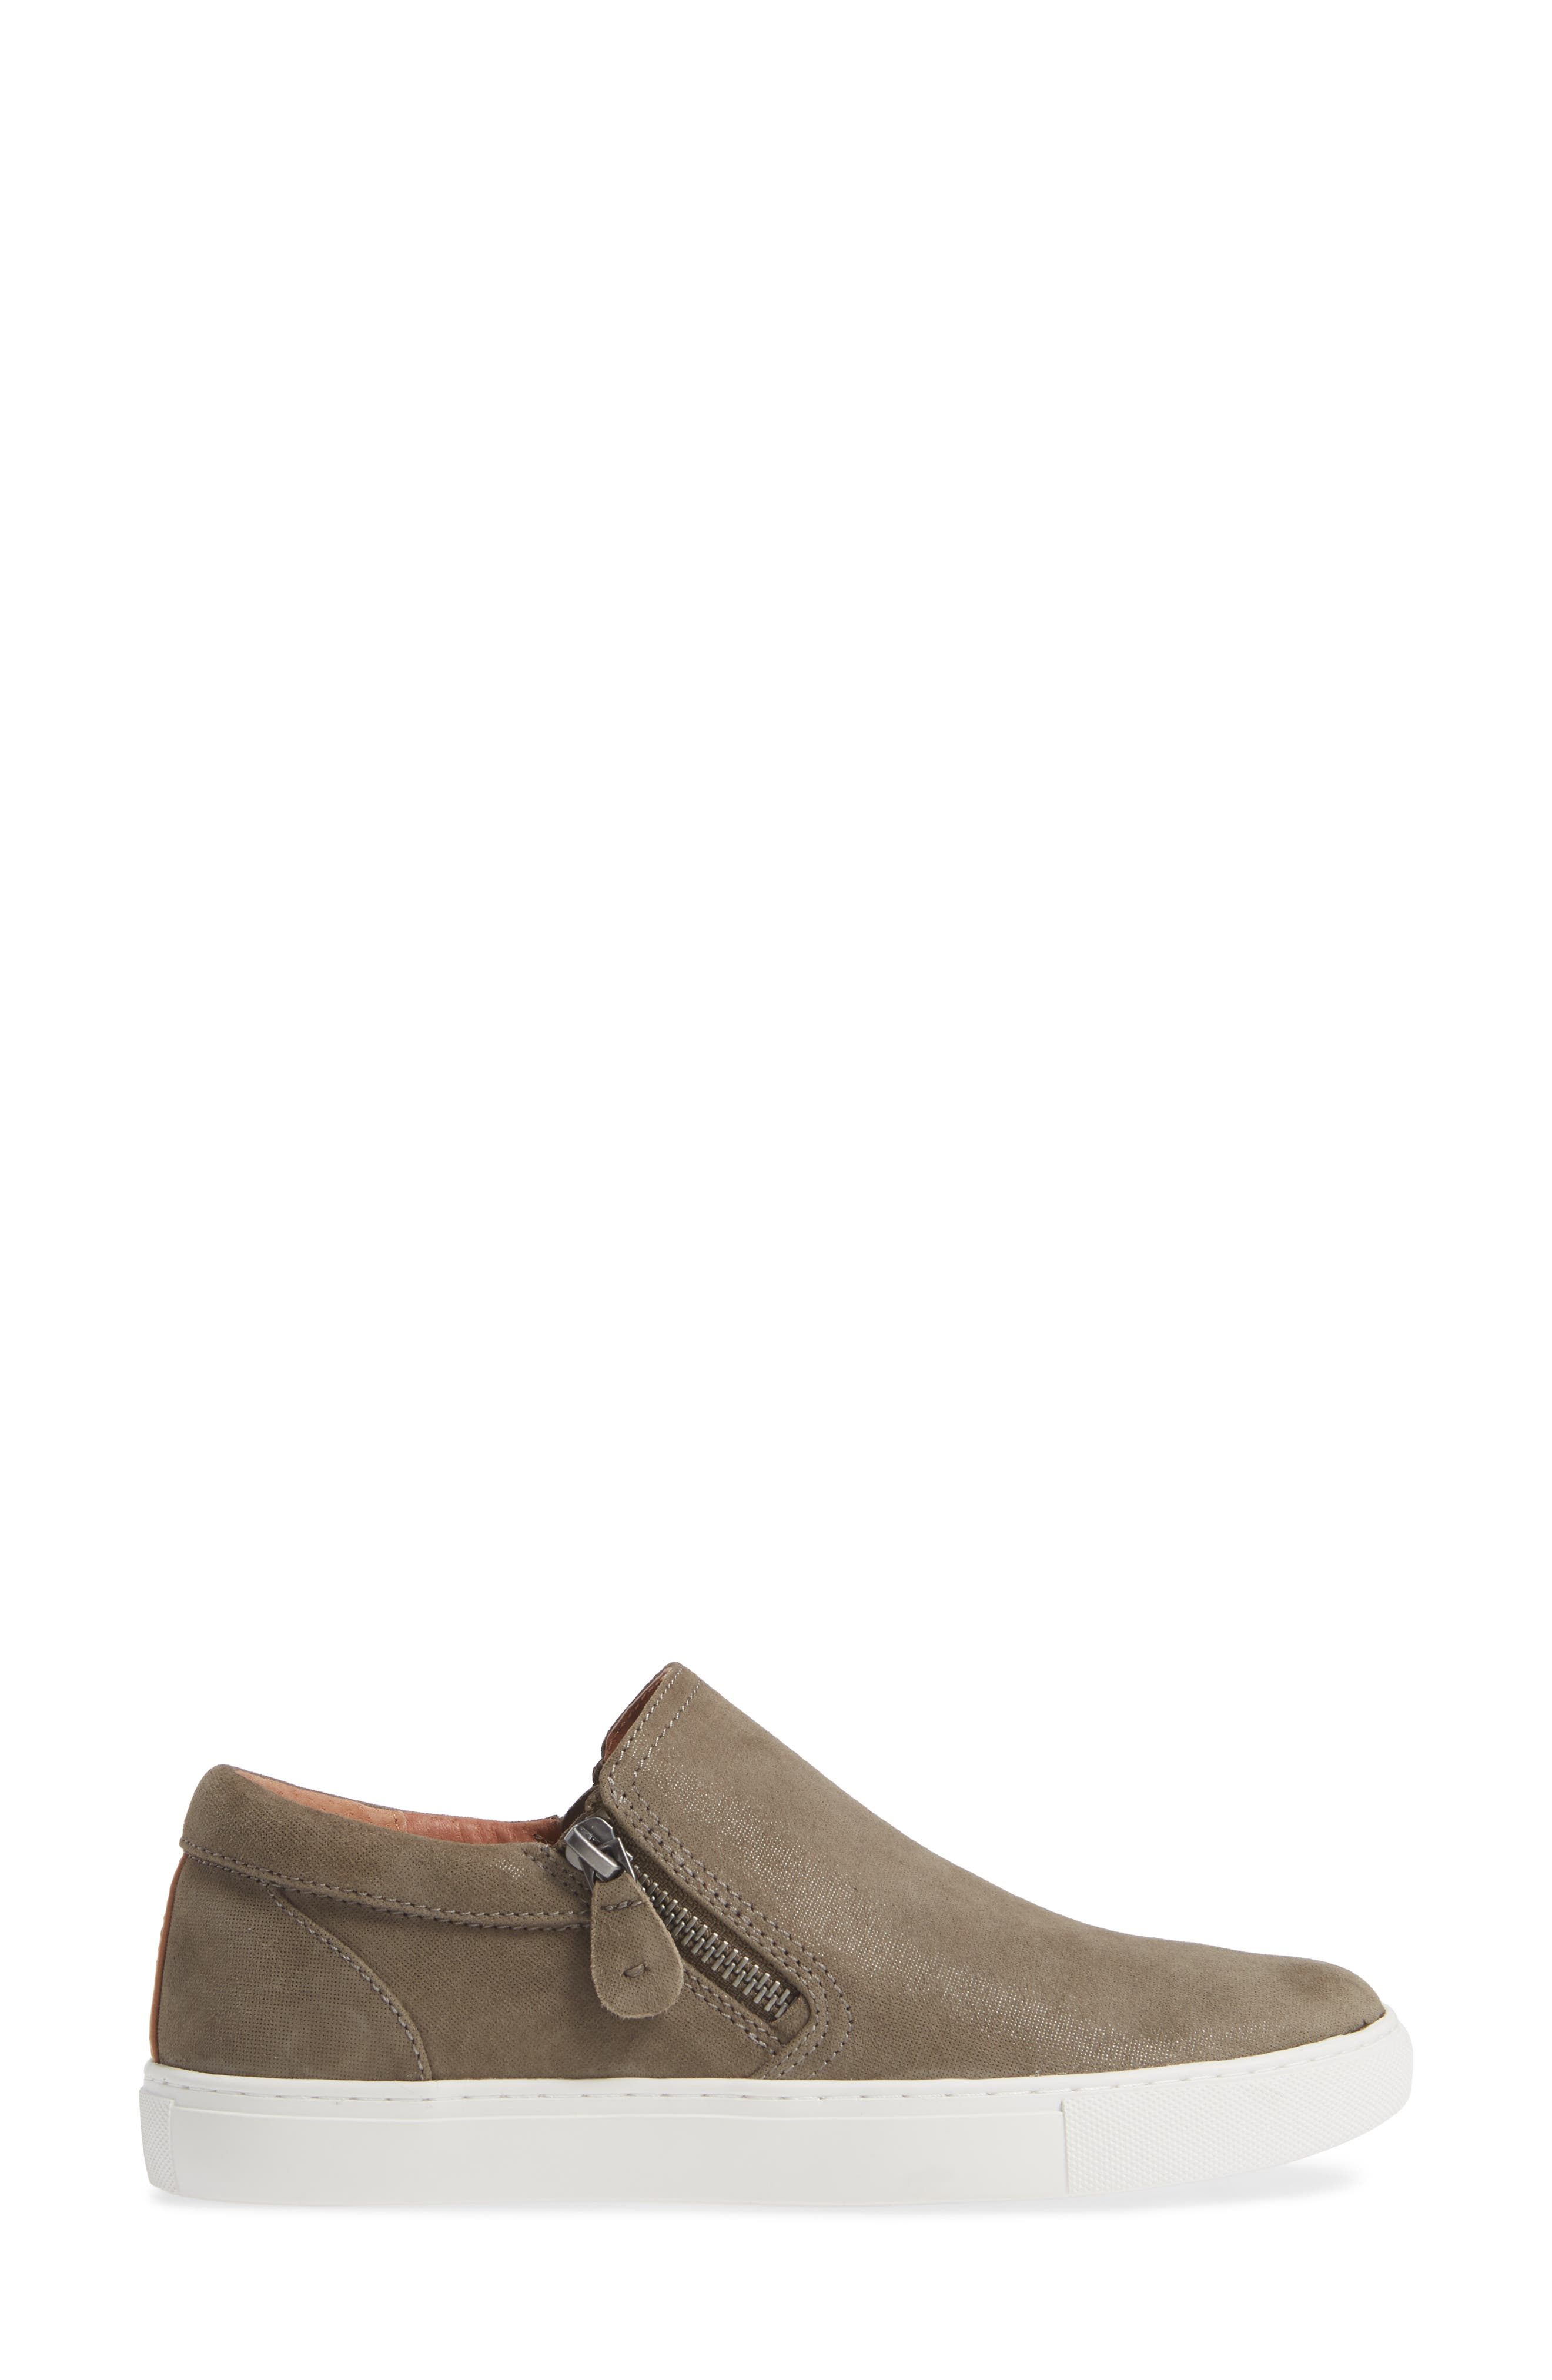 GENTLE SOULS BY KENNETH COLE, Lowe Sneaker, Alternate thumbnail 3, color, CEMENT SUEDE